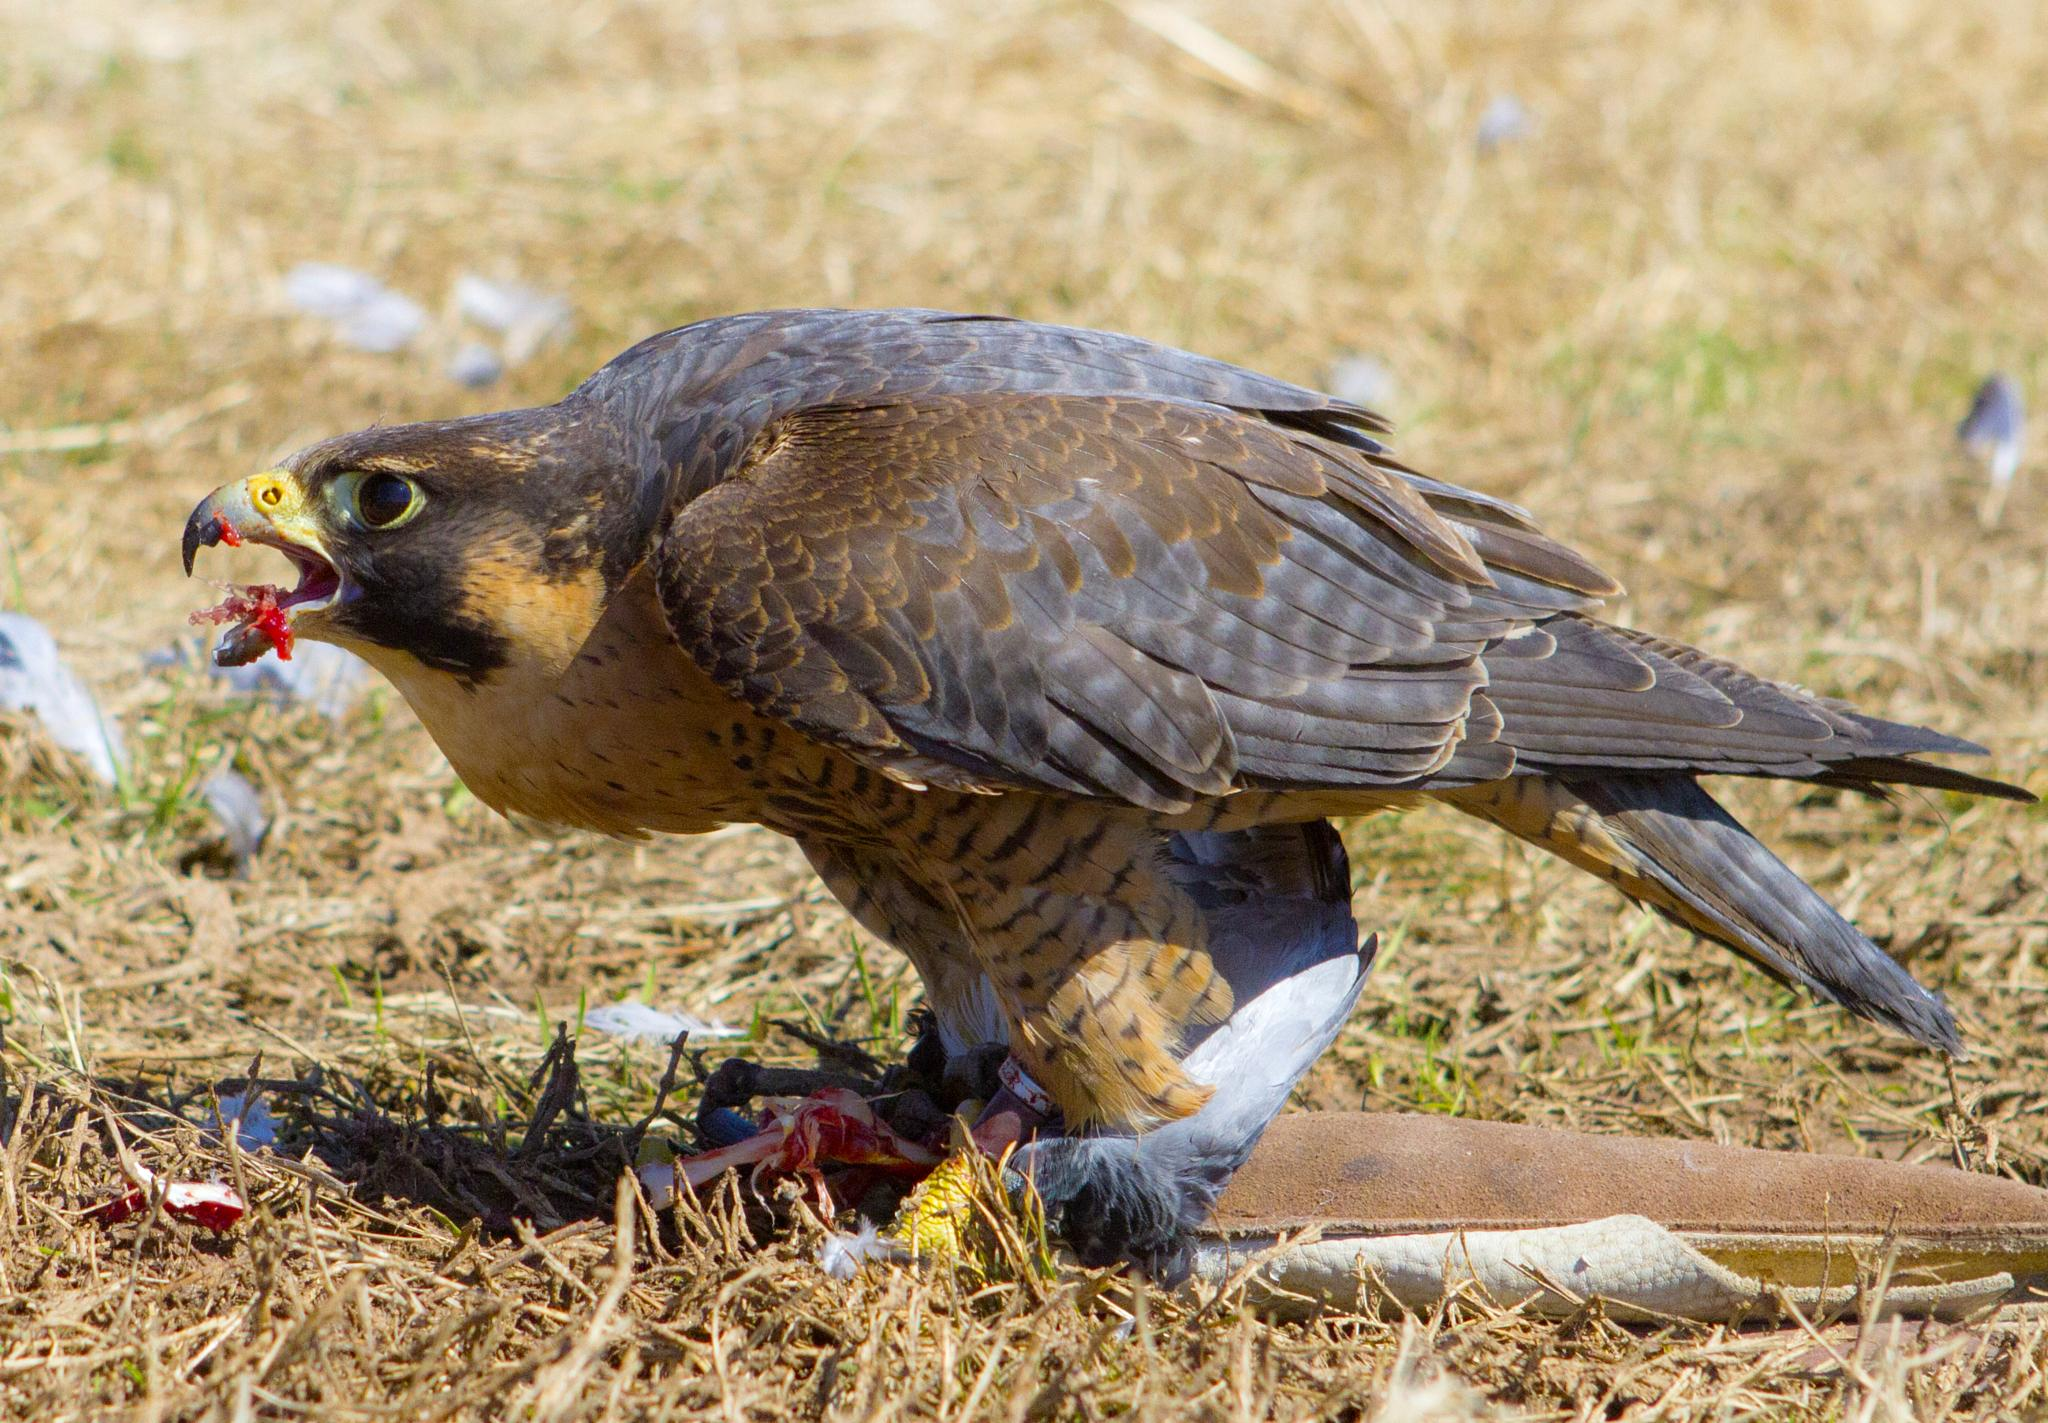 Falcon eating bird dinner by askdrferguson